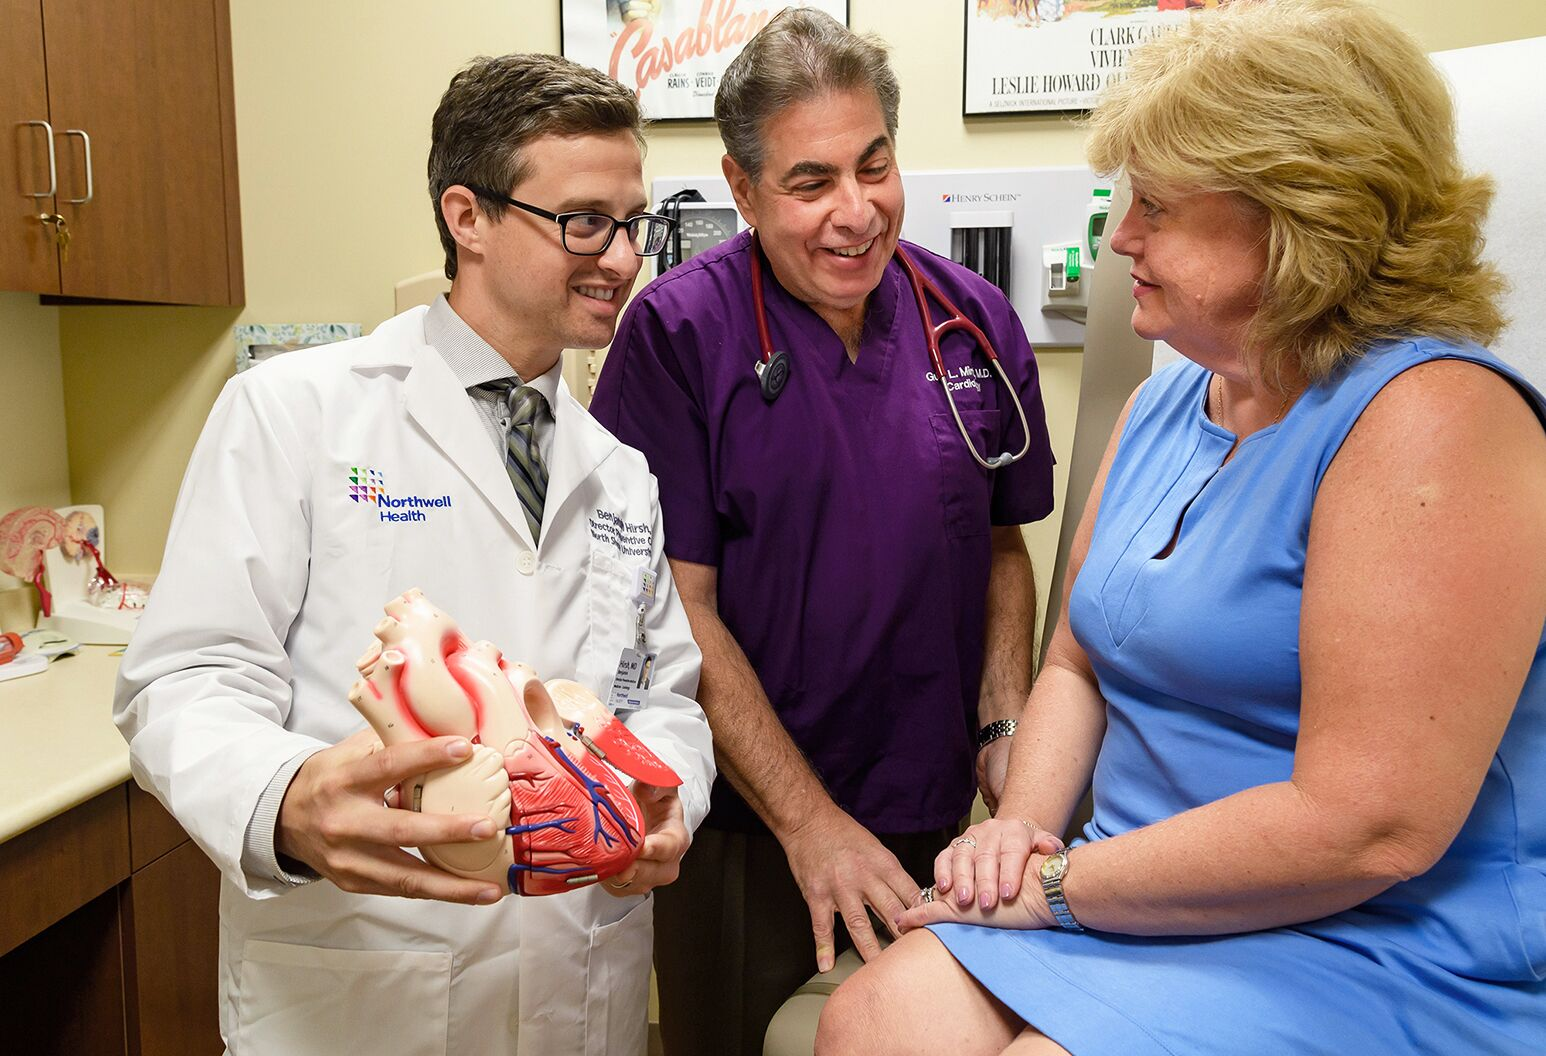 From left: Drs. Benjamin Hirsh and Guy Mintz, co-directors of Sandra Atlas Bass Heart Hospital Lipid Center, meet with a patient.